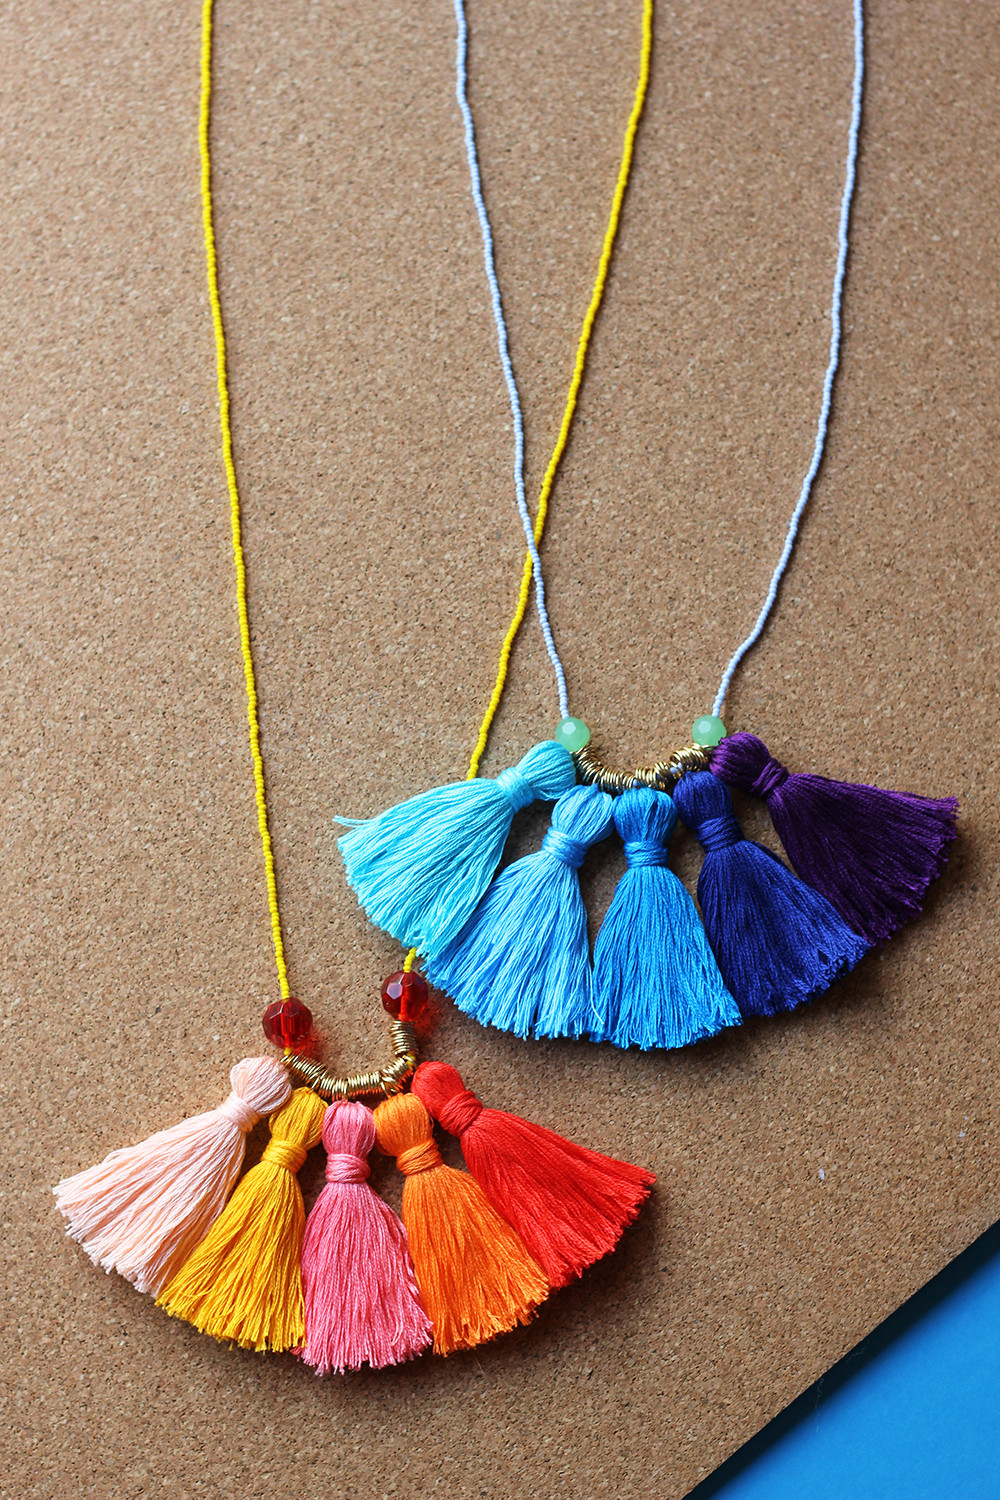 Best ideas about DIY Tassel Necklaces . Save or Pin DIY Ombré Tassel Necklace Now.